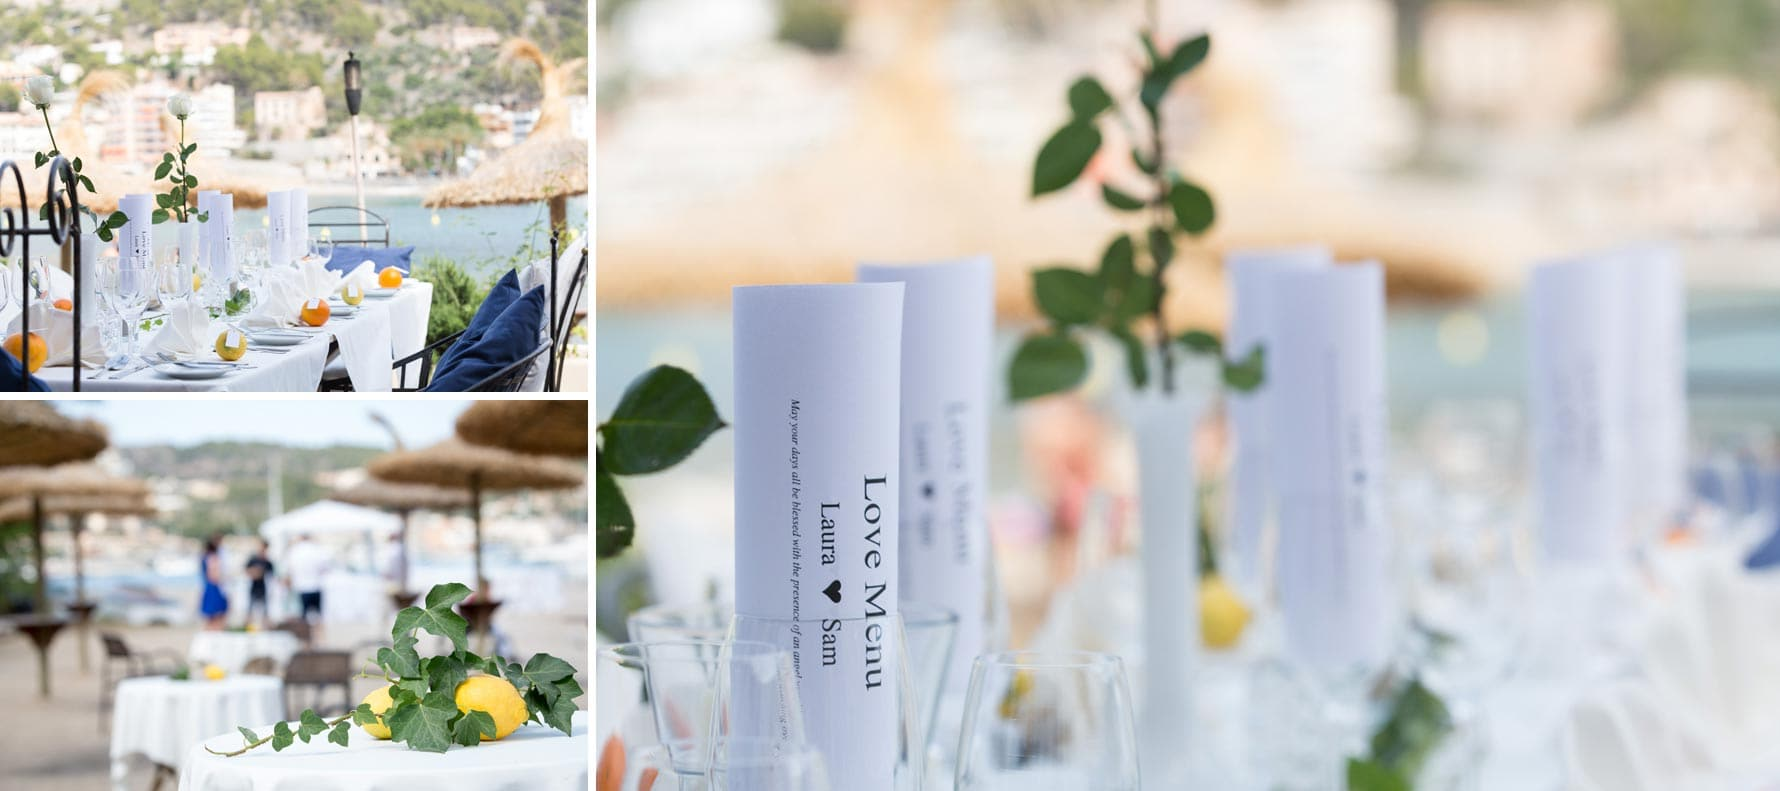 """The tables are laid"" by Mallorca wedding photographer in Port de Soller"